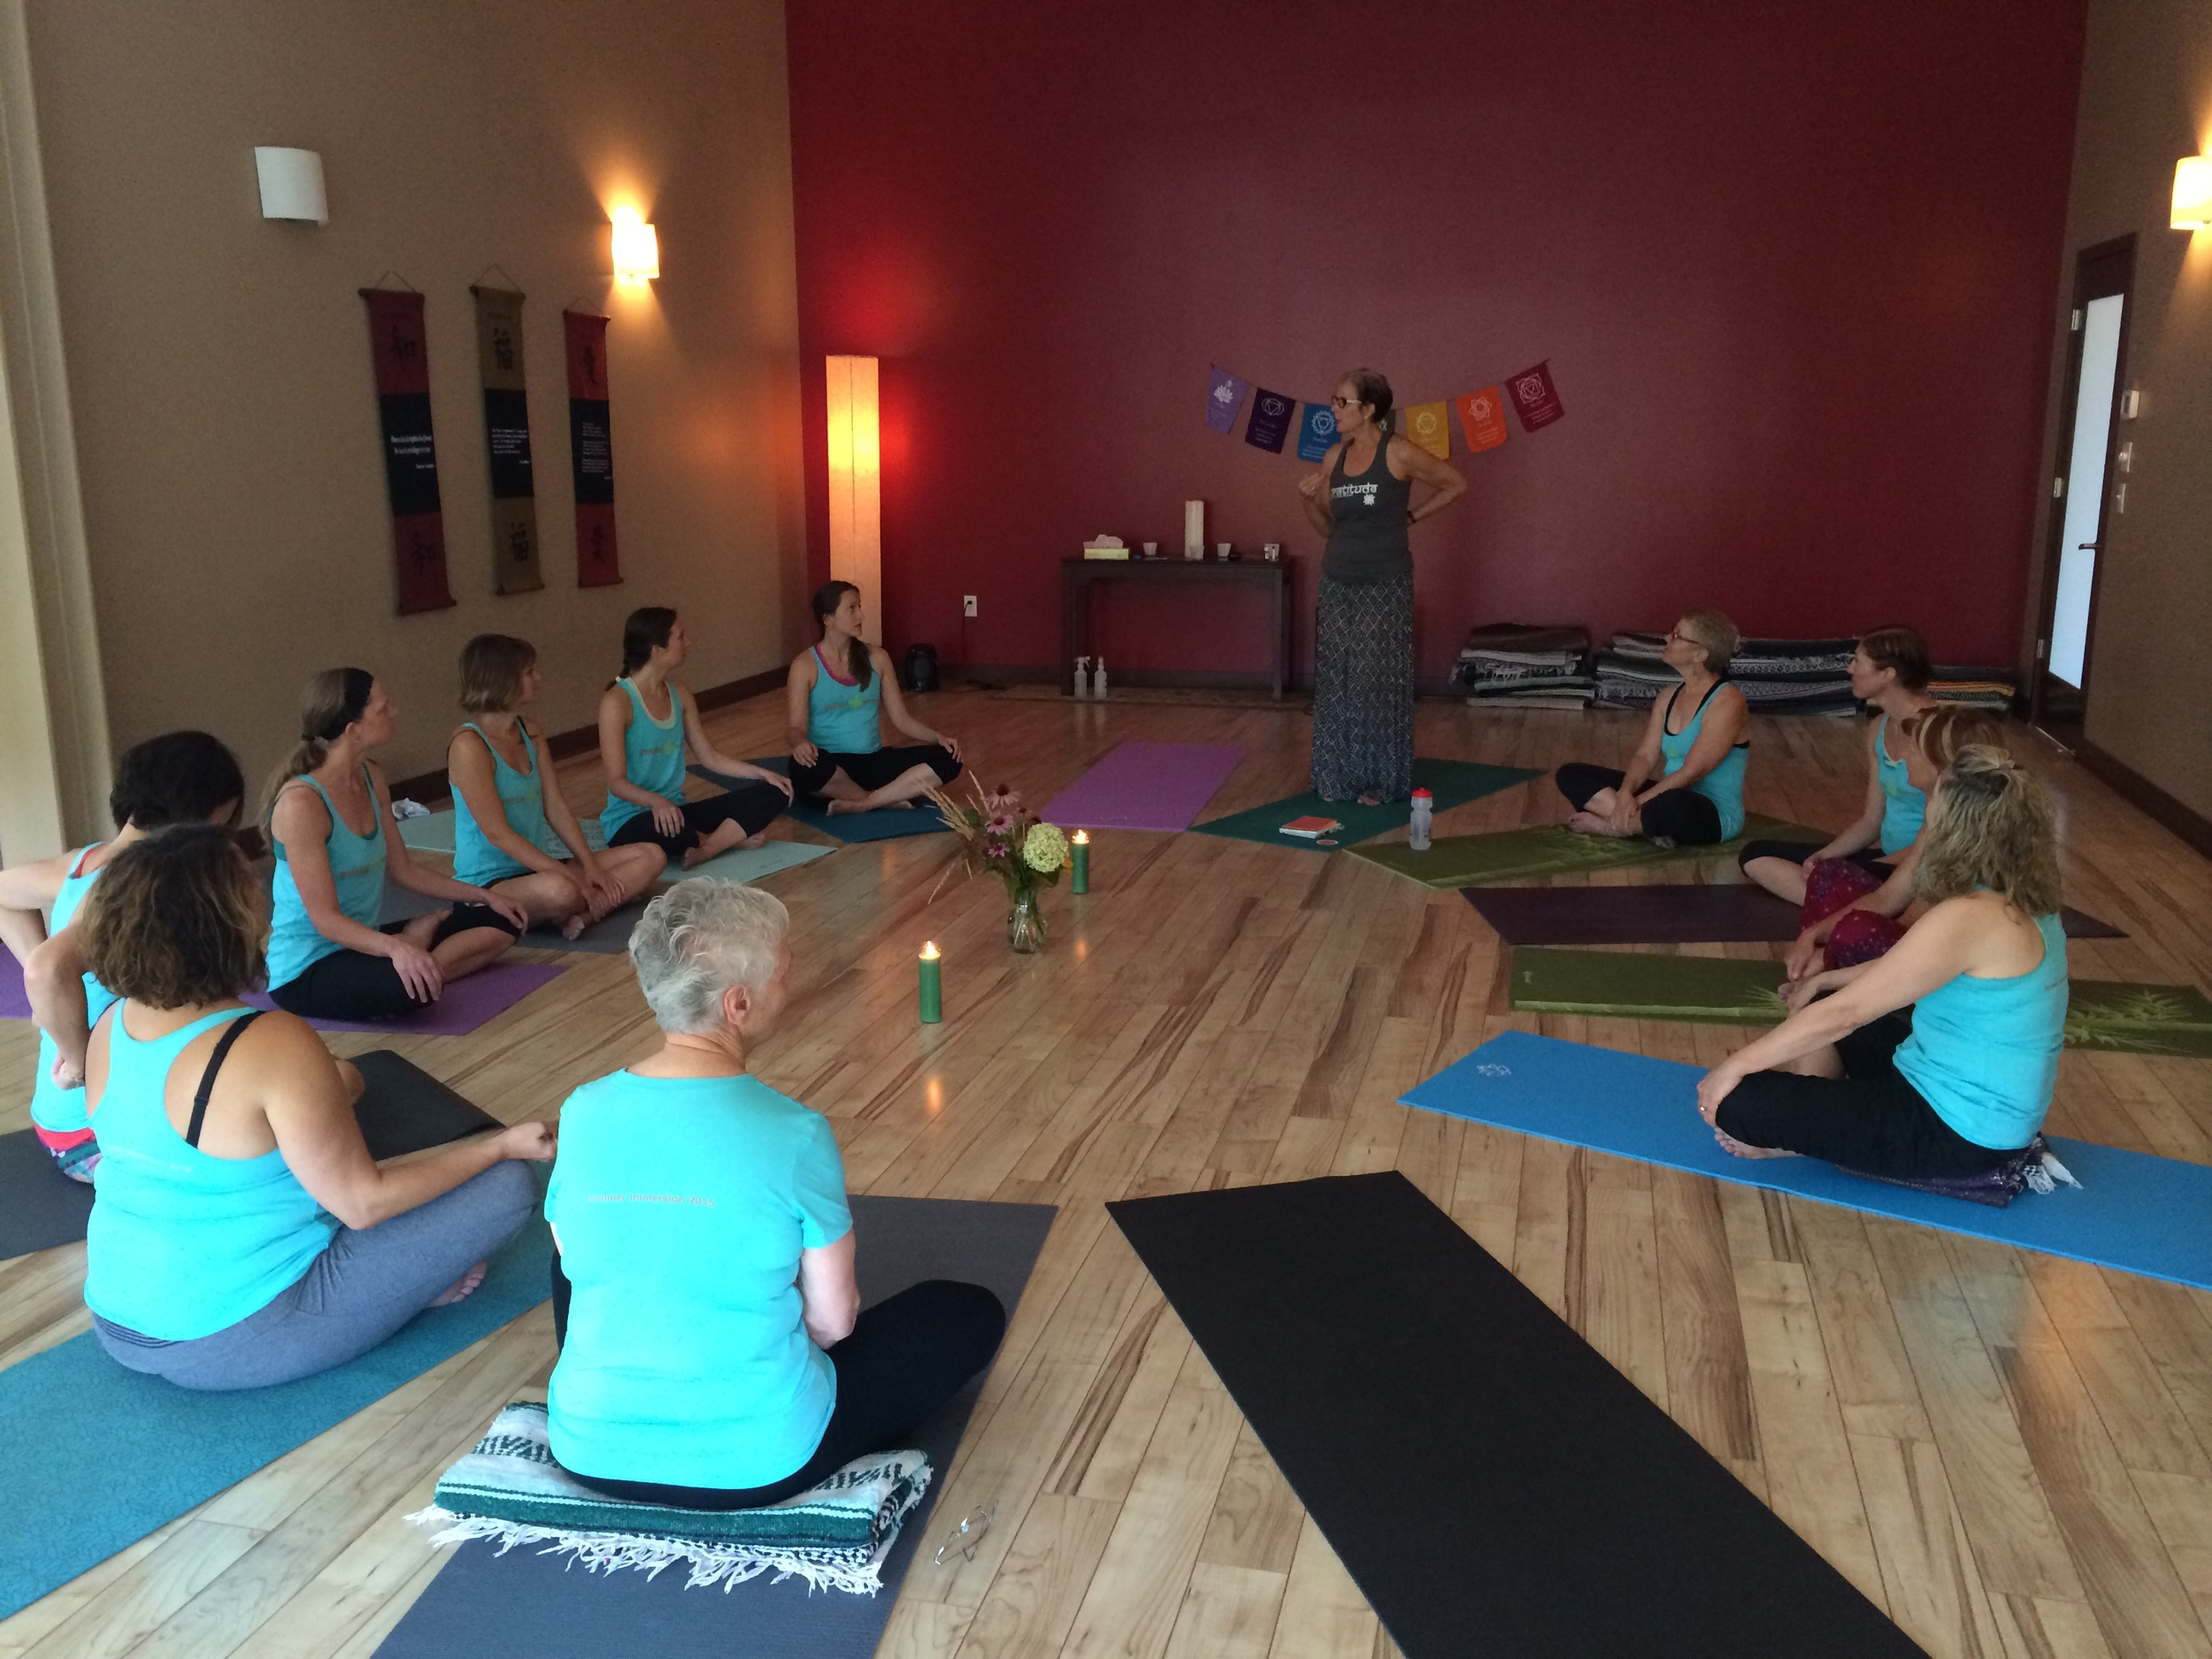 yoga-teacher-training-minneapolis-stpaul-minnesota